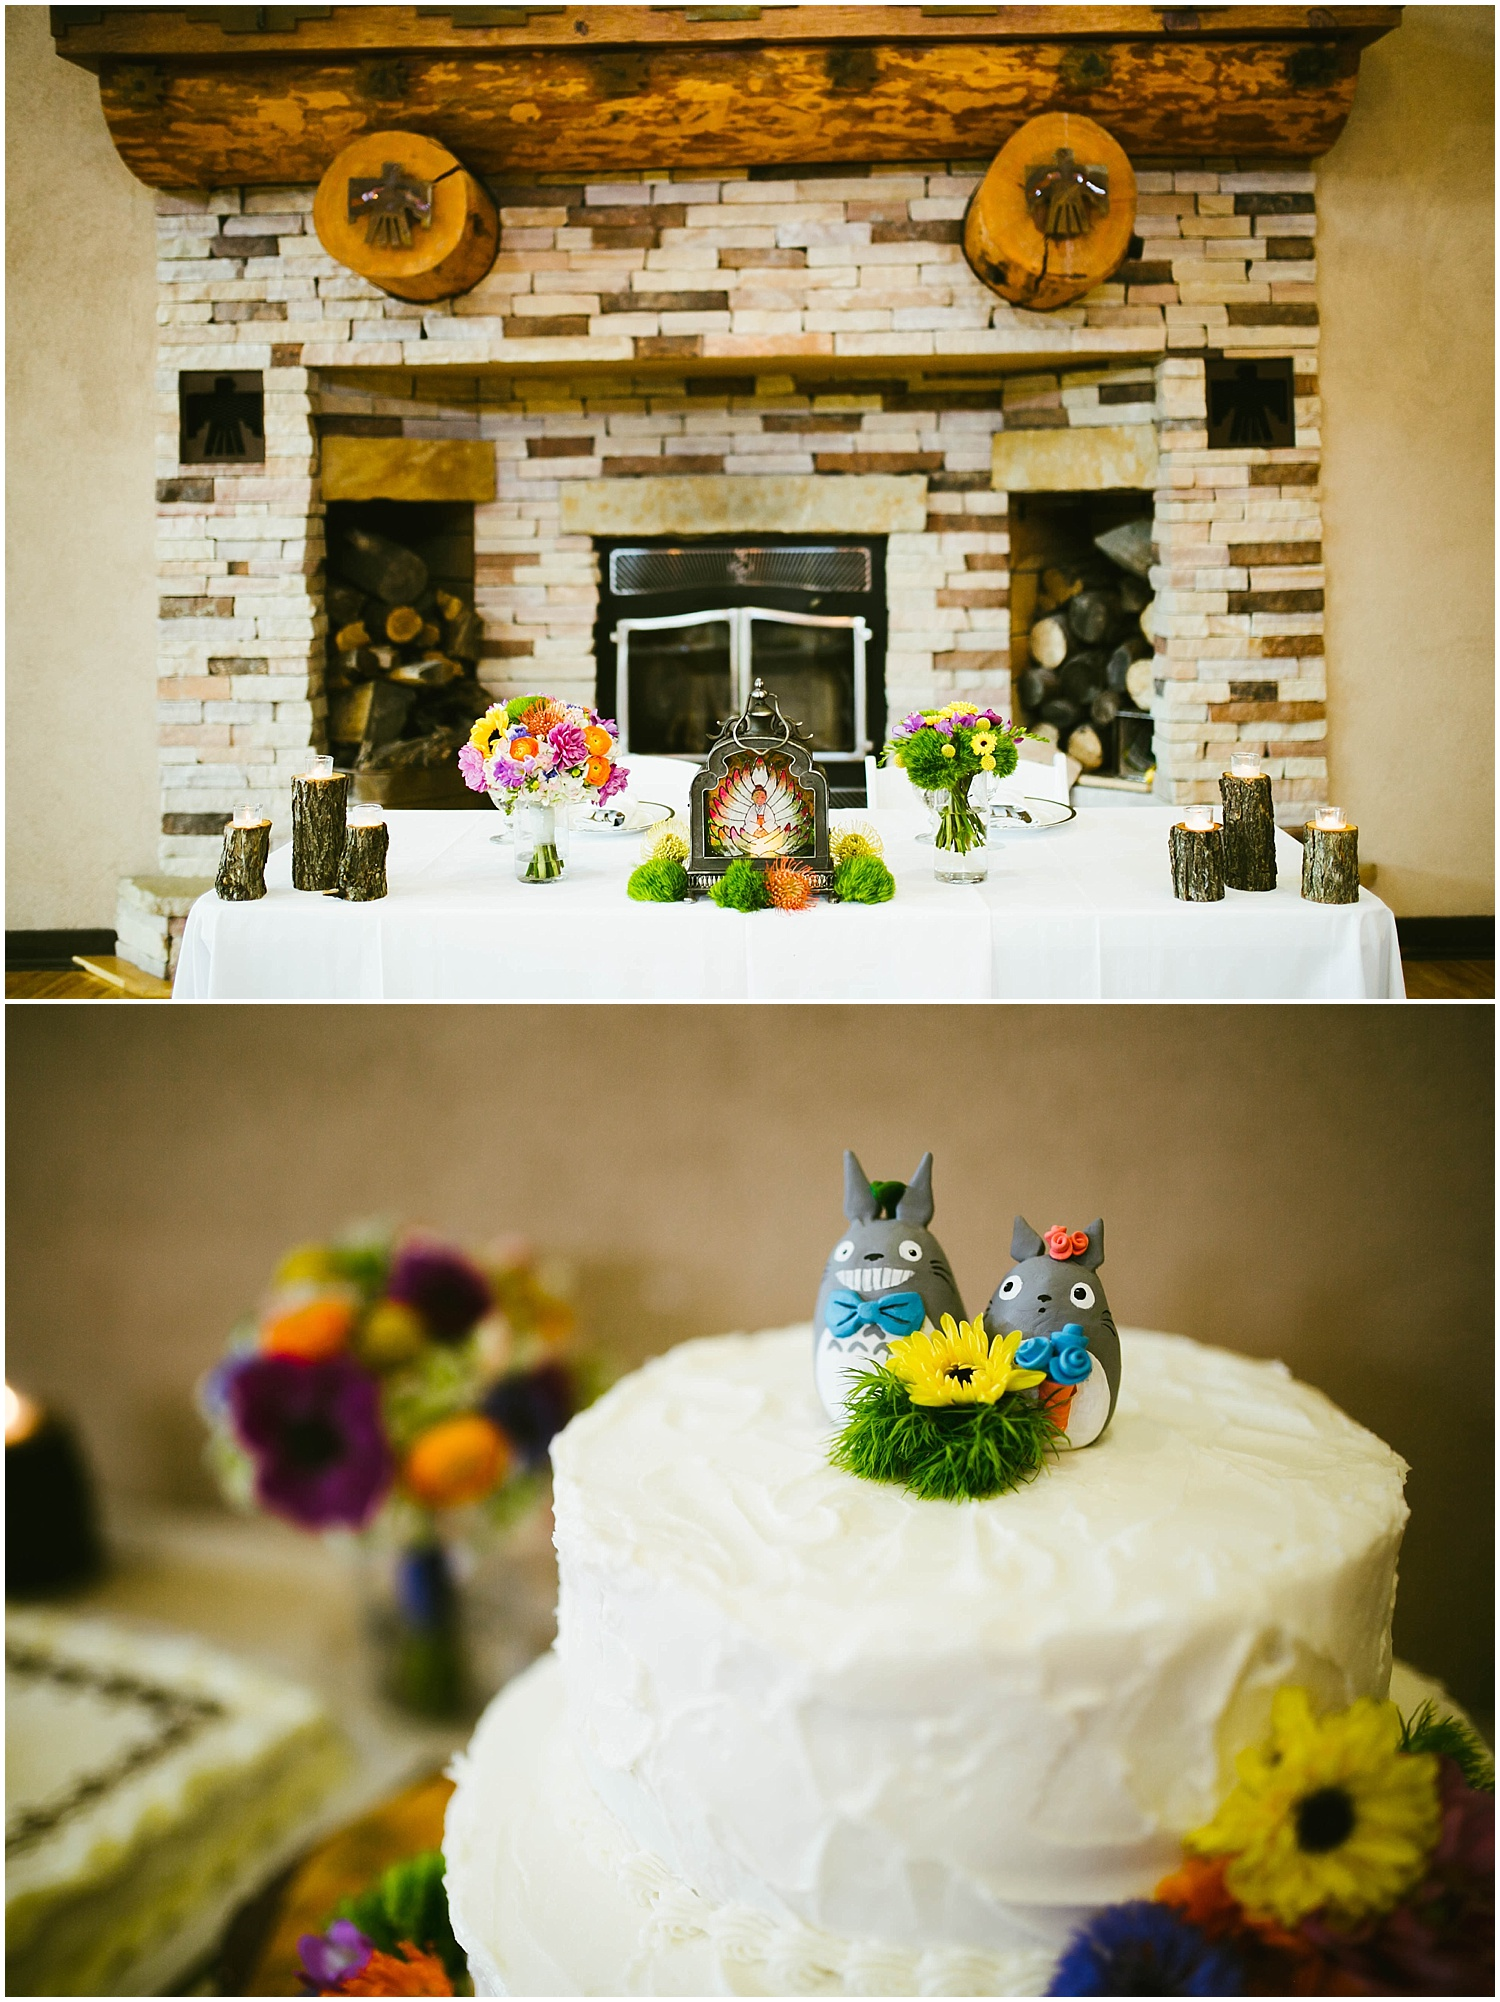 Studio Ghibli inspired Wedding Decor | Ryan proposed to Mallory at the Studio Ghibli Museum in Mitaka, Japan so it was fitting that their beautiful wedding day at Nature Pointe weddings in Tijeras, New Mexico was like a Miyazaki film come to life. A lot of planning went into their wedding. The magic of Miyazaki's films is unlike any other so incorporating the magnificence of his imagination into Mallory + Ryan's wedding day was a must. The intricacy of their wedding details were absolutely AMAZING!| Jasper K Photography